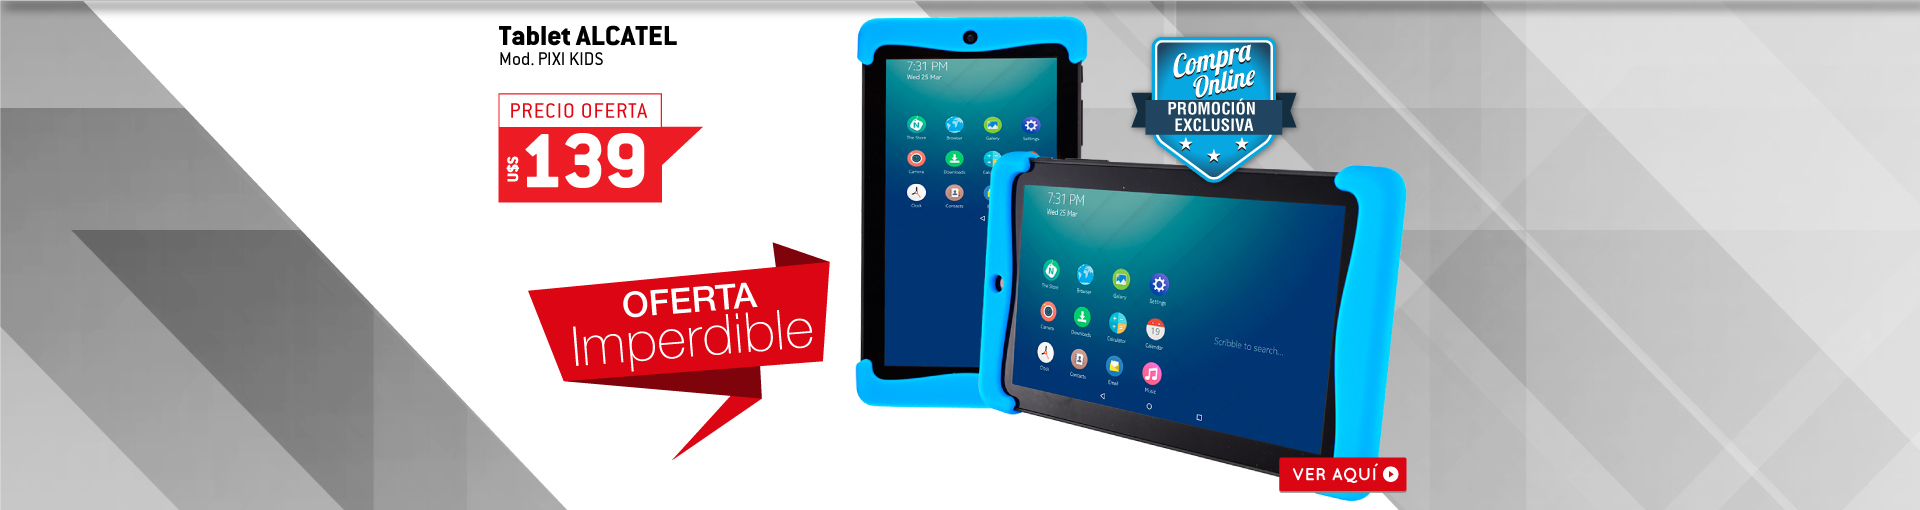 h-07-585296-tablet-alcatel-1